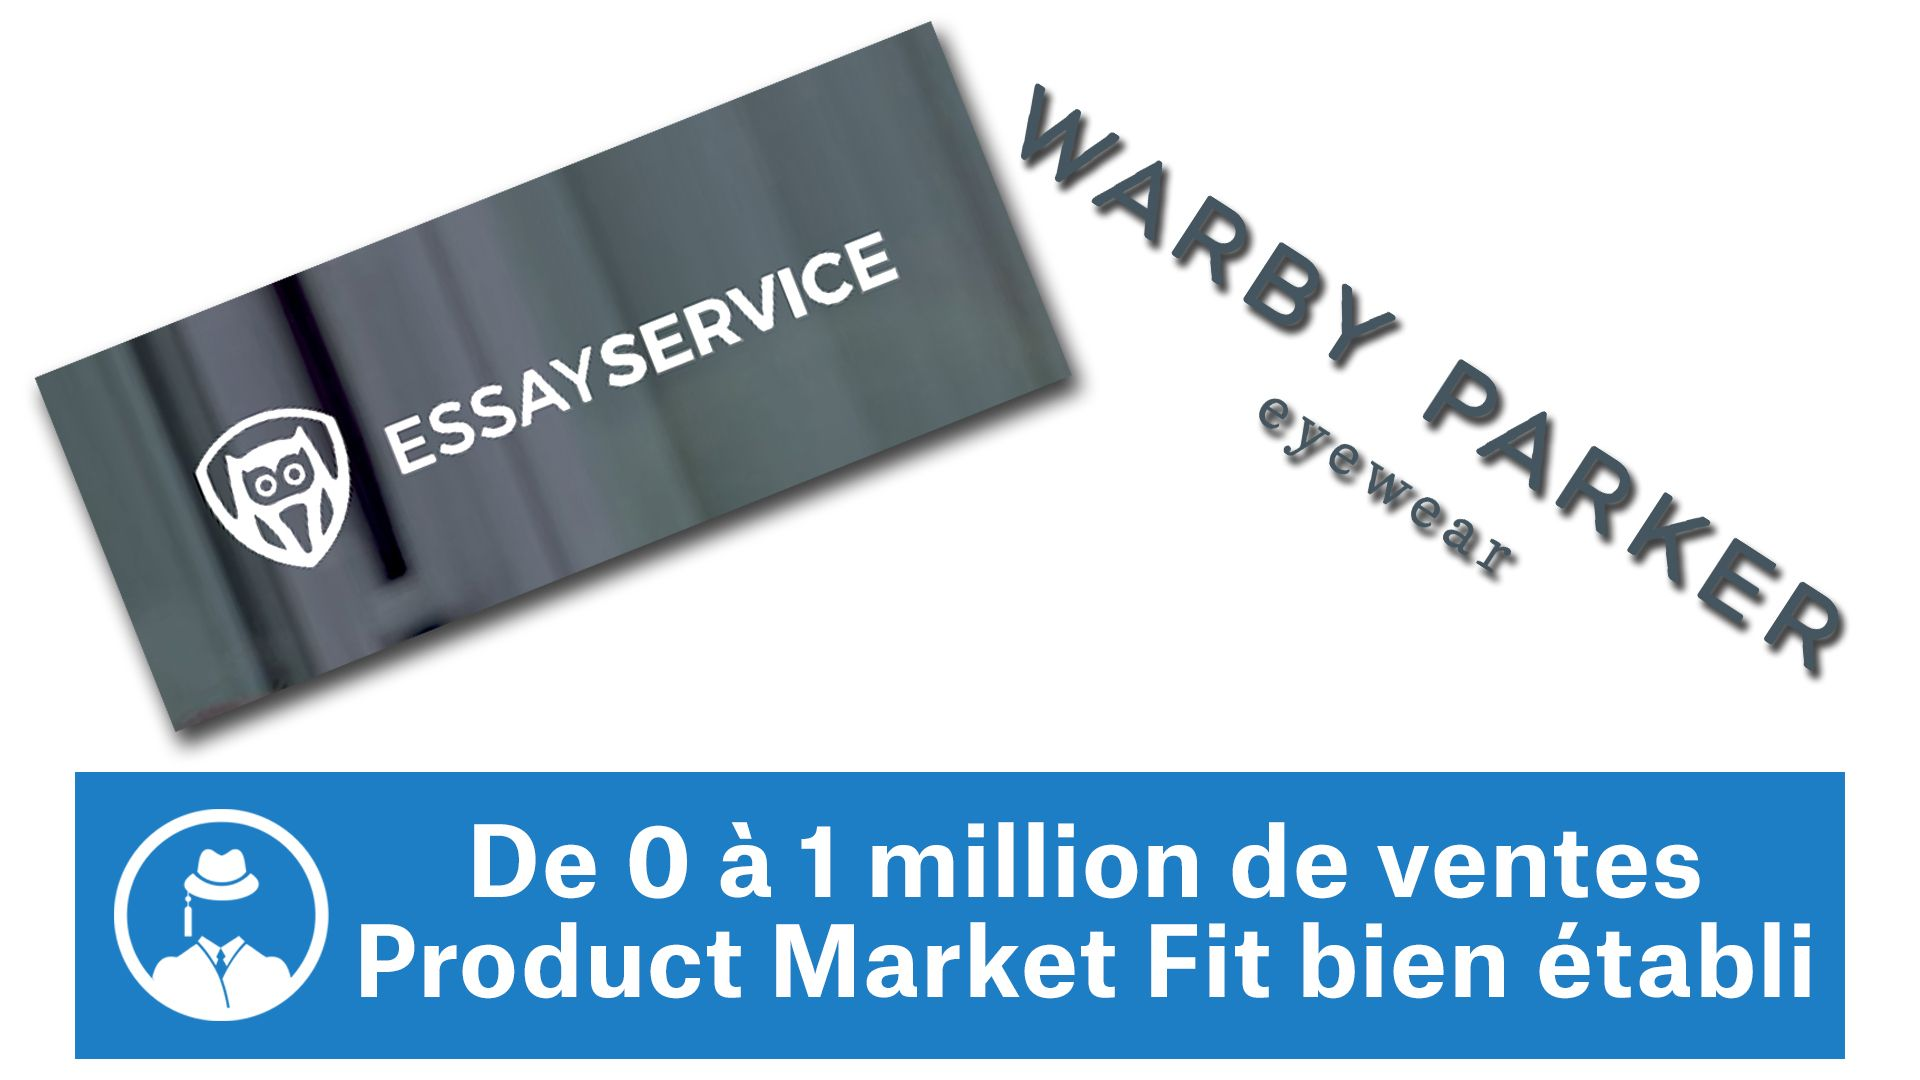 De 0 à 1 million de dollars de vente (EssayService / Warby Parker) #GrowthHacking #WebMarketing #FormationGrowthHacking #CentreDeFormationFrance #TunnelAARRR #AARRR #SocialMedia #CommunityManagement #SEO